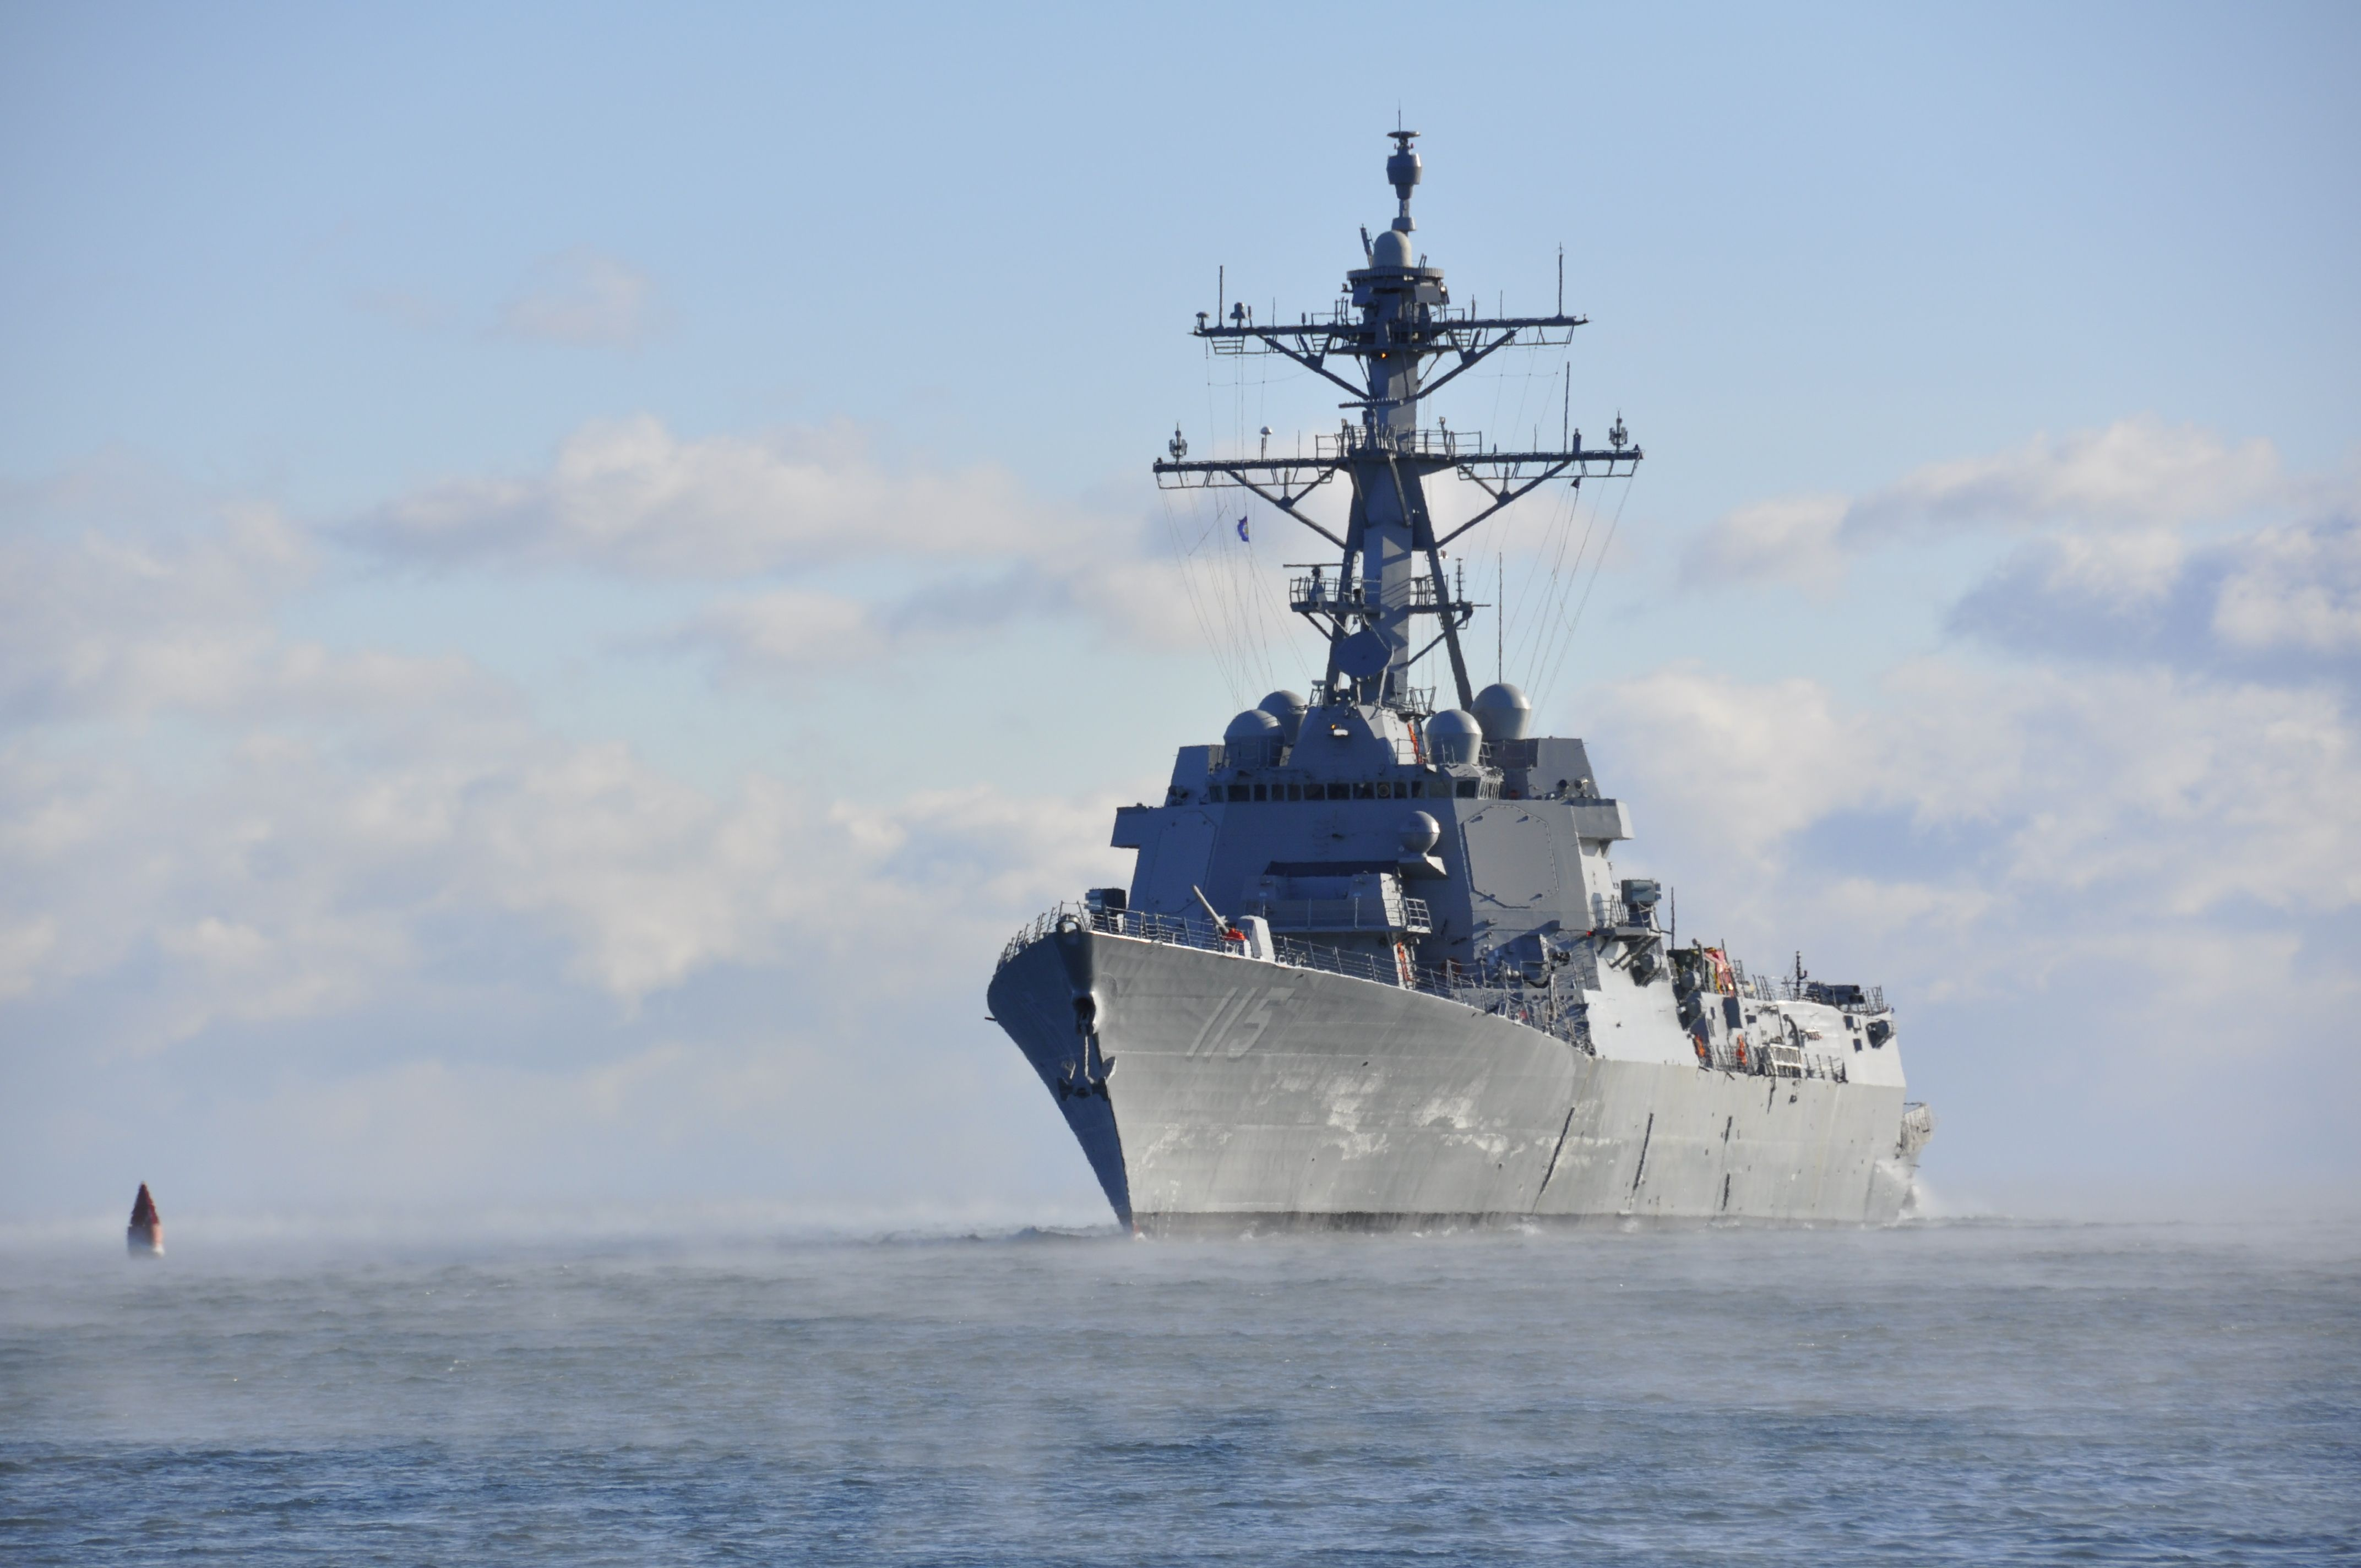 Rafael Peralta Ddg 115 Successfully Completed Acceptance Trials After Spending Two Days Underway Off The Coast Arleigh Burke Class Destroyer Warship Us Navy